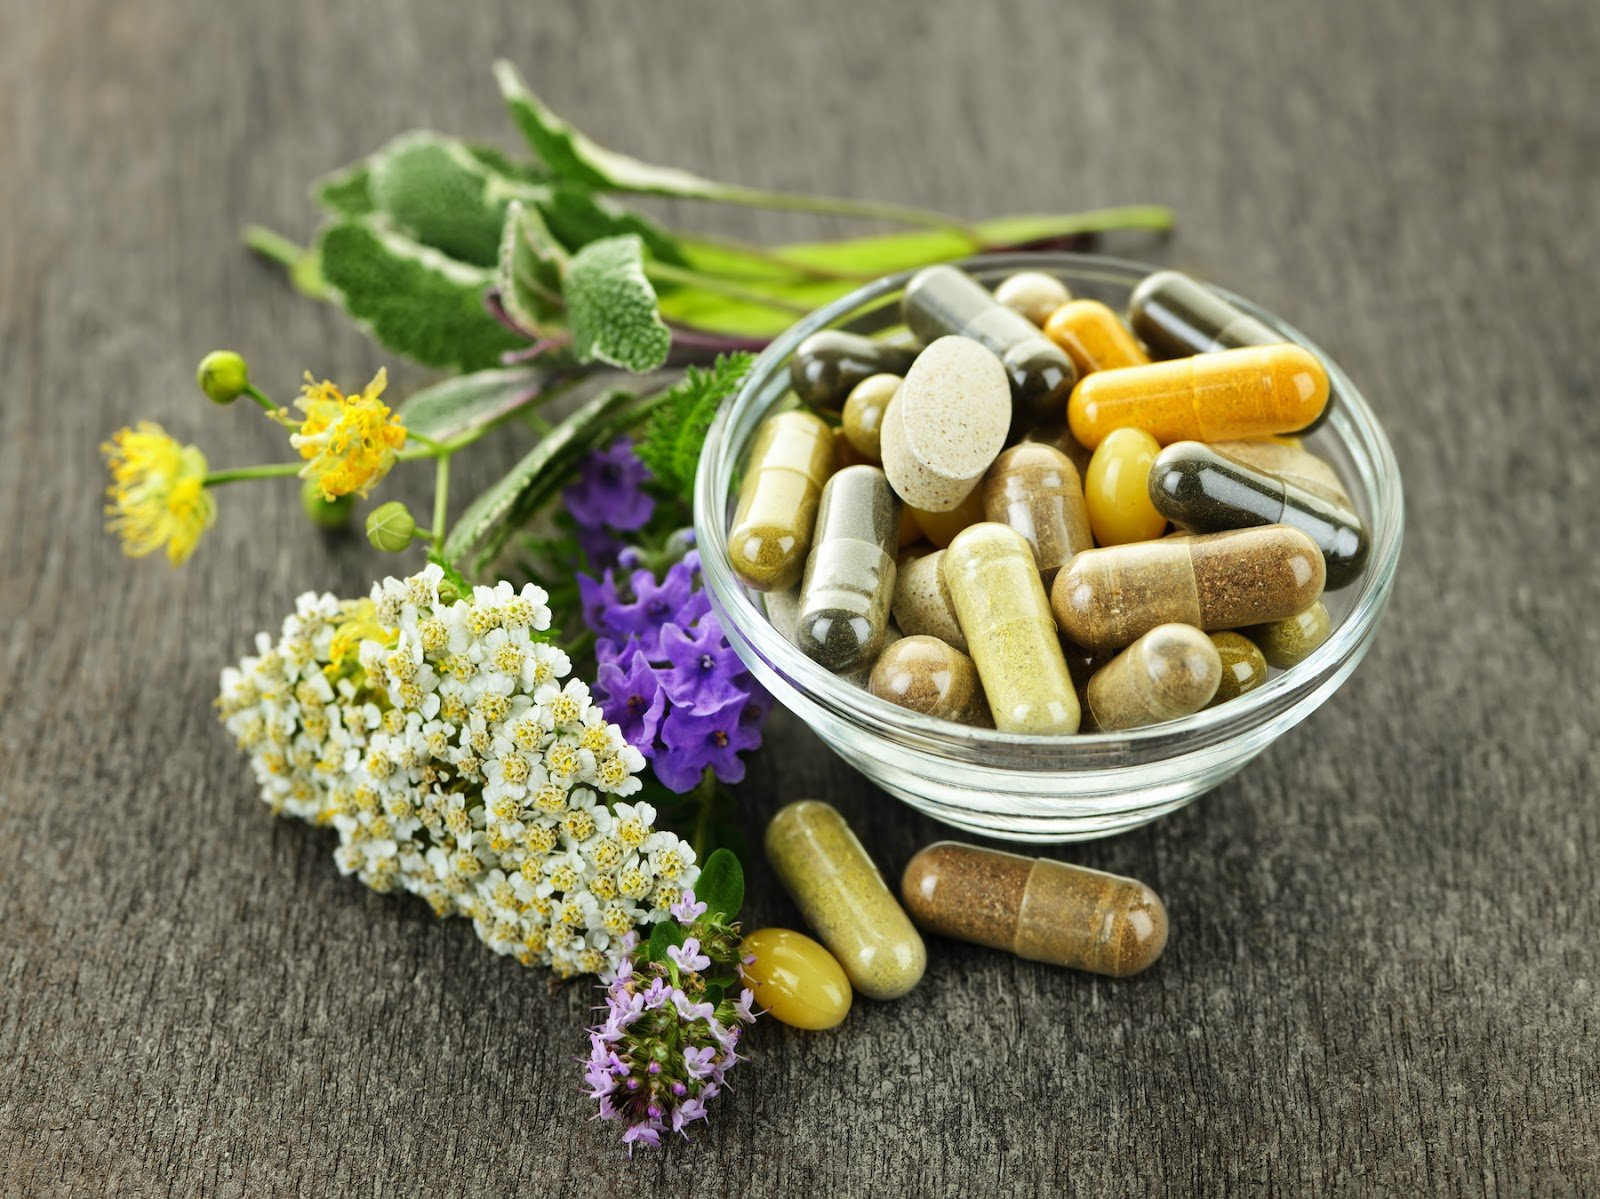 Thyroid supplements in a bowl, surrounded by herbal remedies